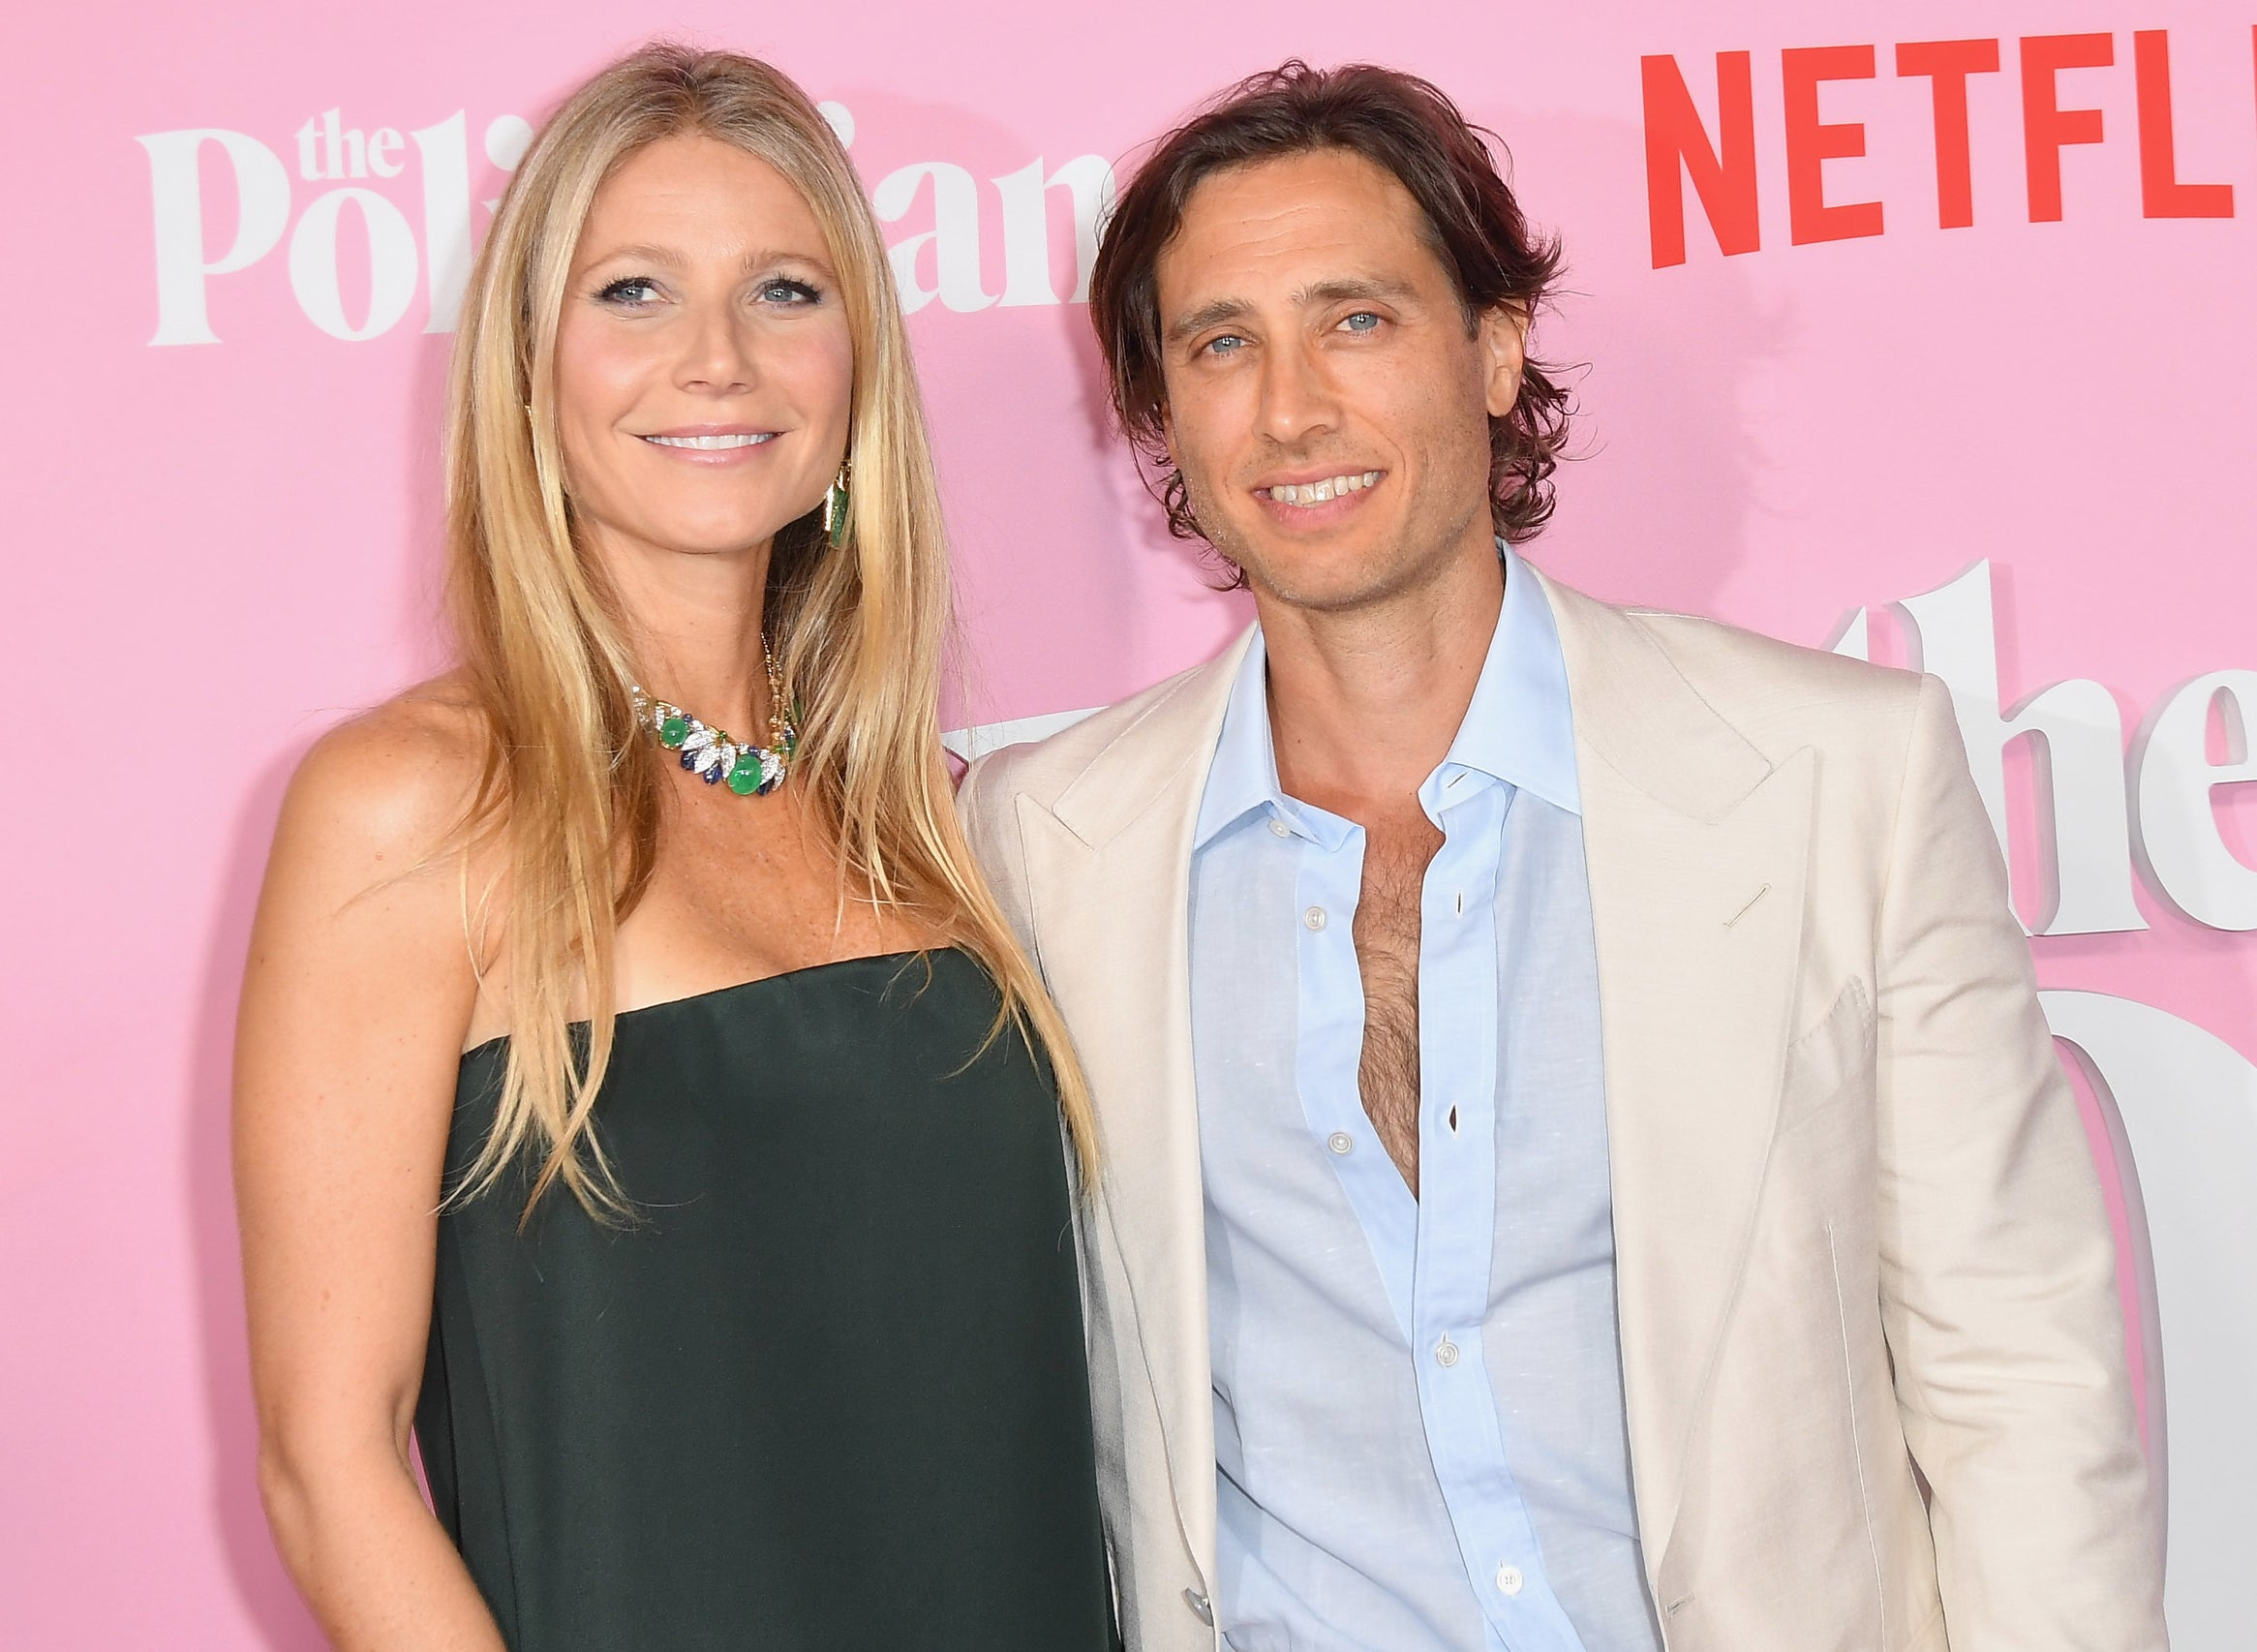 Gwyneth and Brad pose on a red carpet